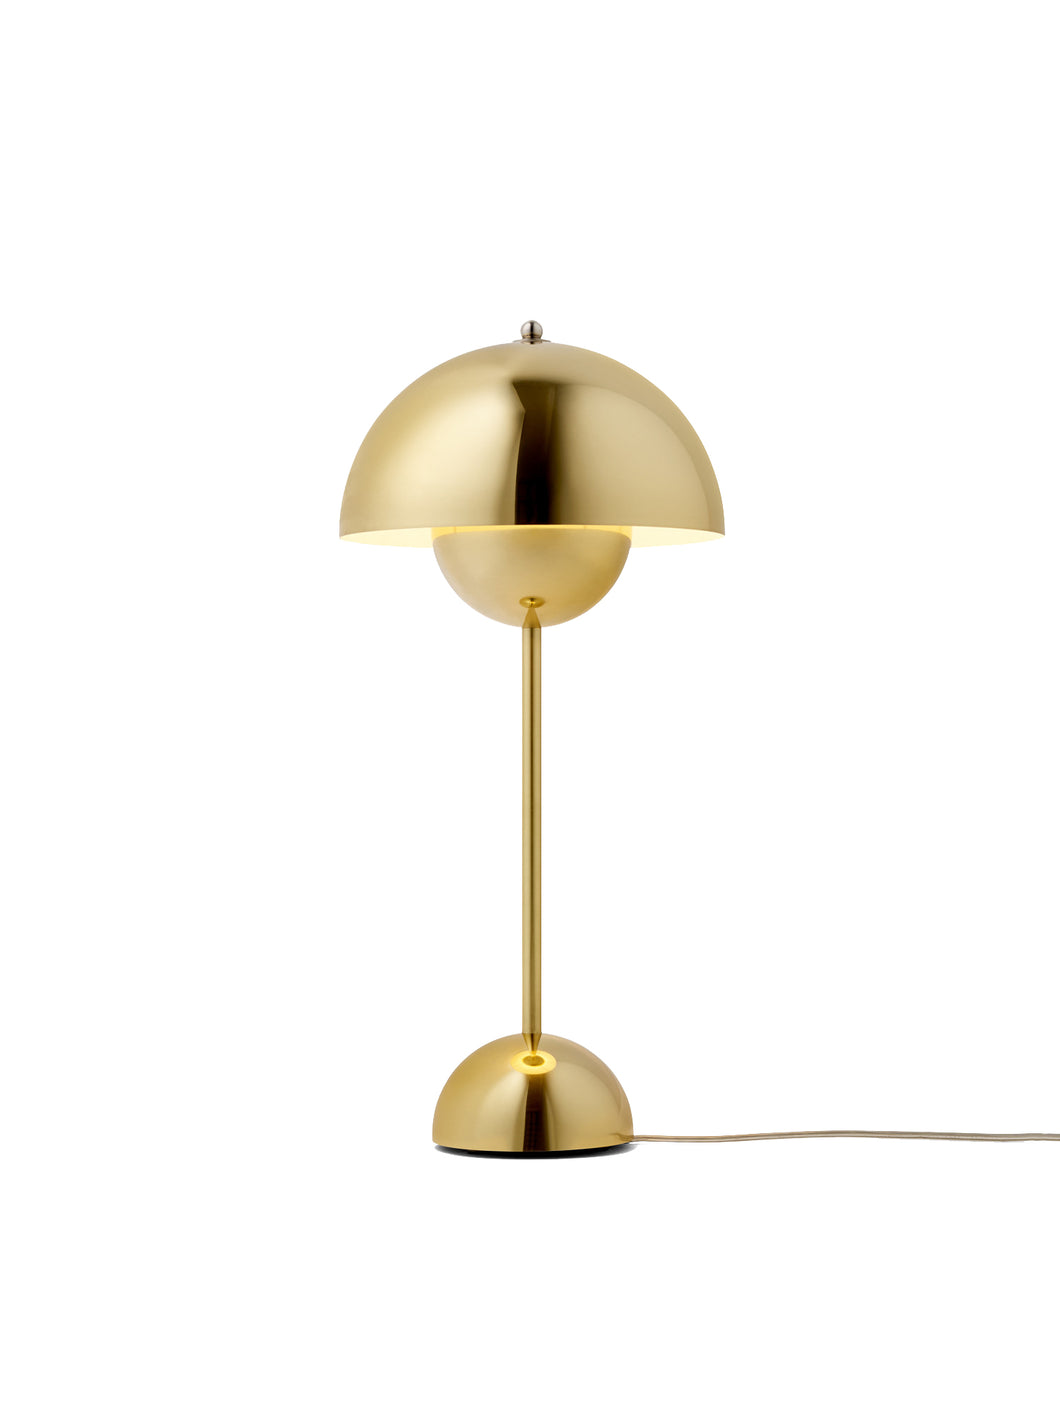 &TRADITION | Flowerpot VP3 by Verner Panton 1969 - Polished Brass (New Without Box - EU Light)